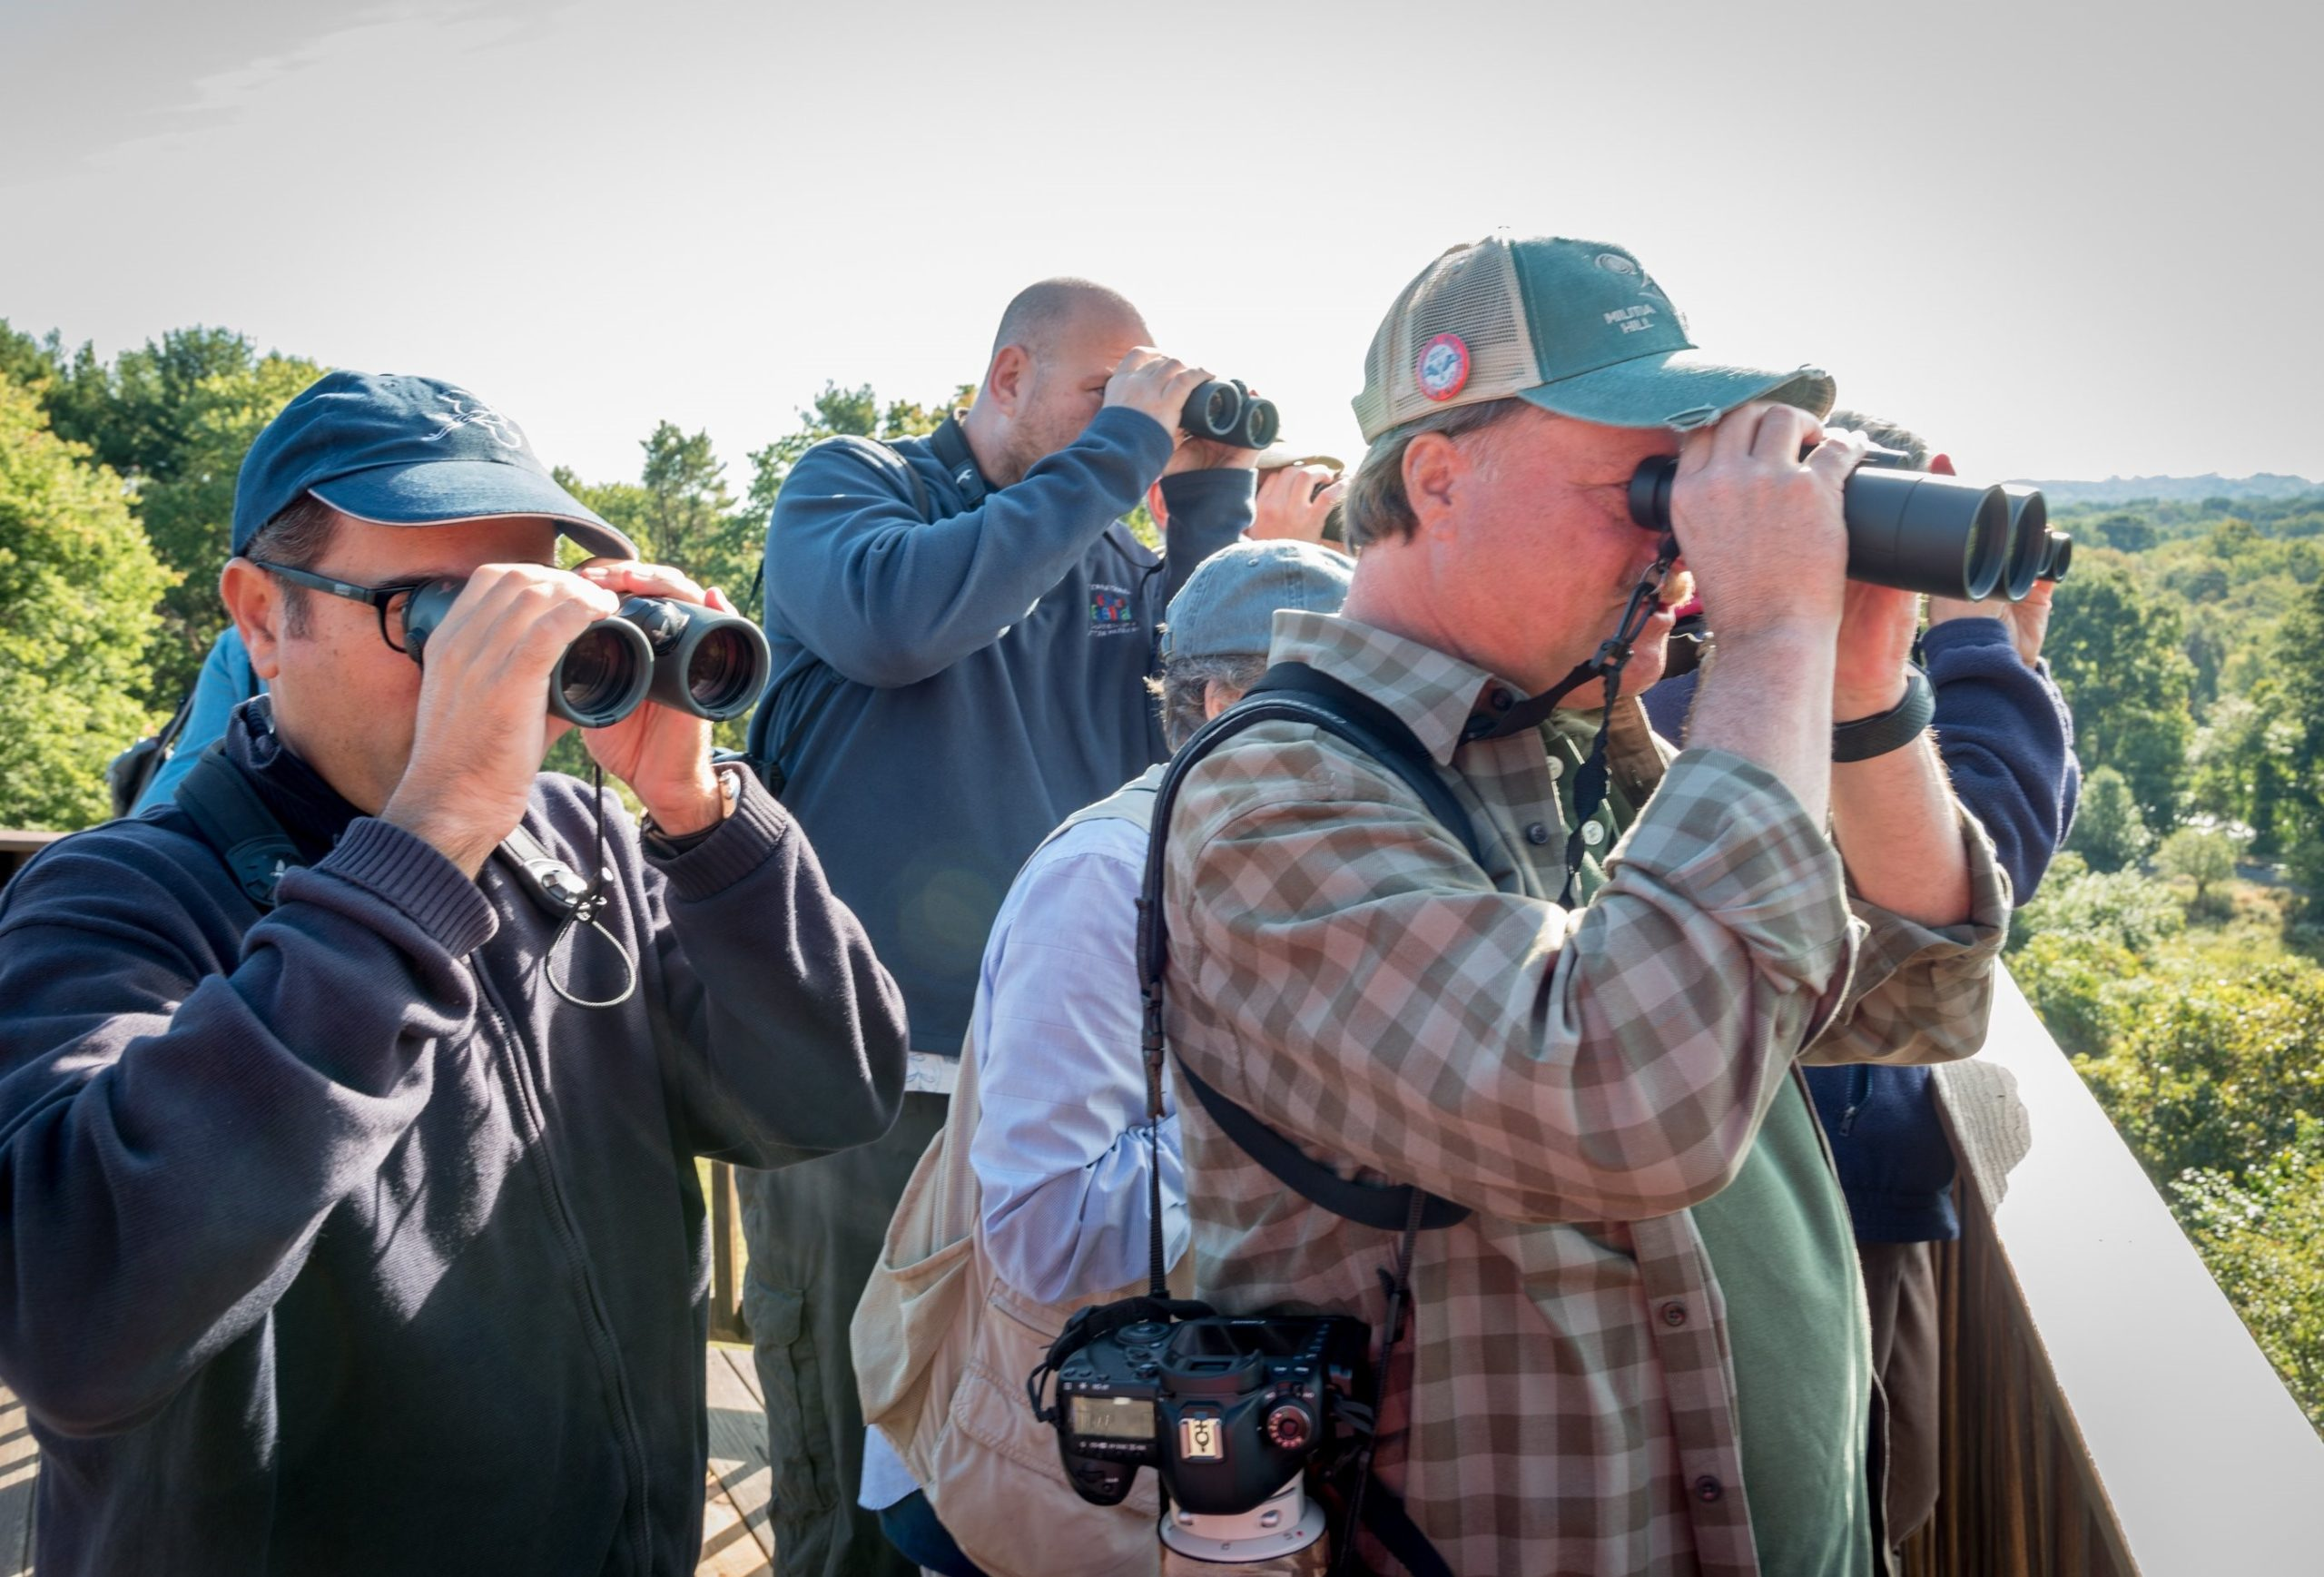 America's Favorite Pastime to Be Showcased at the American Birding Expo